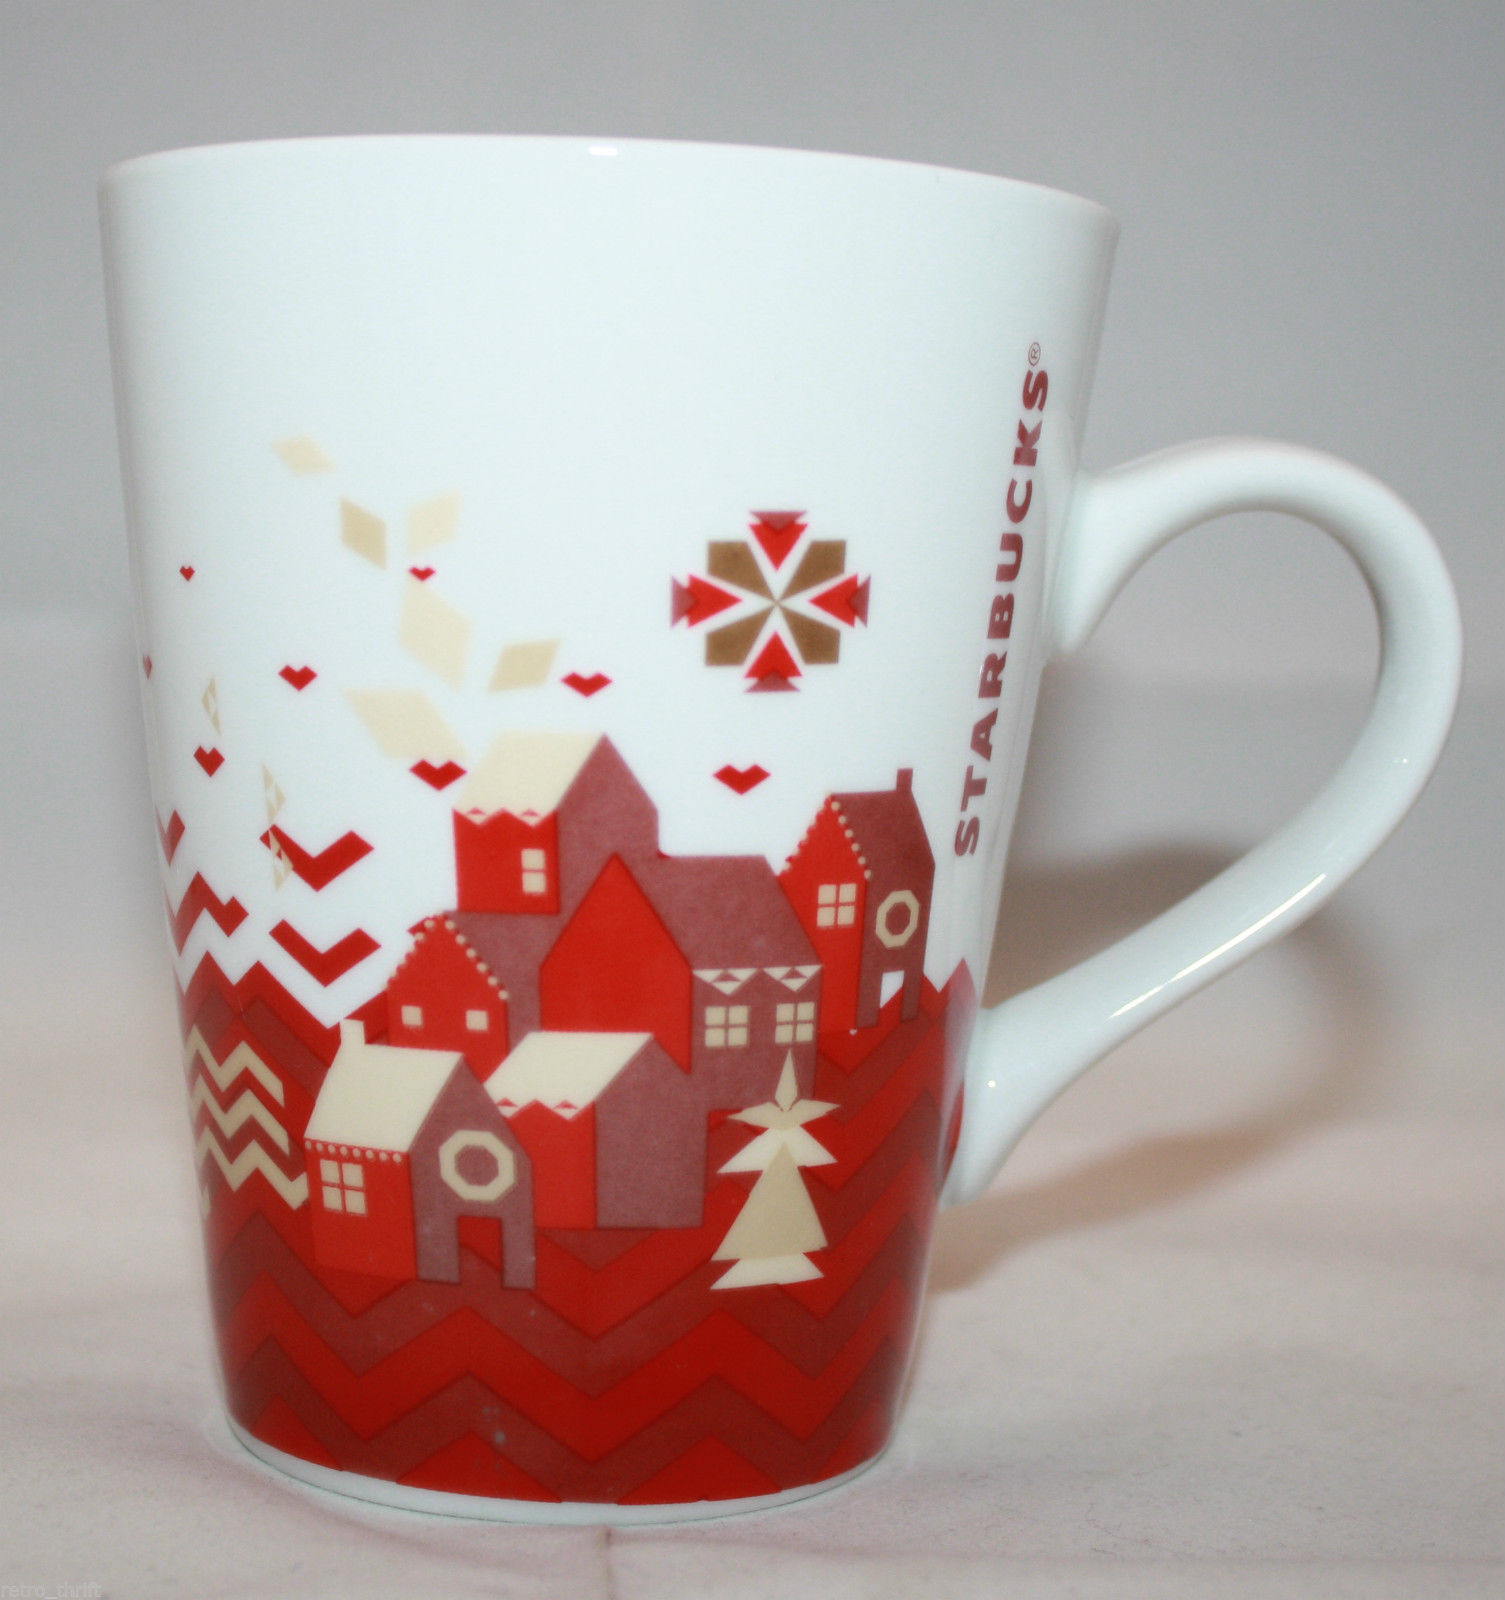 Primary image for Starbucks 2013 Christmas Holiday 1 Coffee Mug Cups 11 oz  White Red House